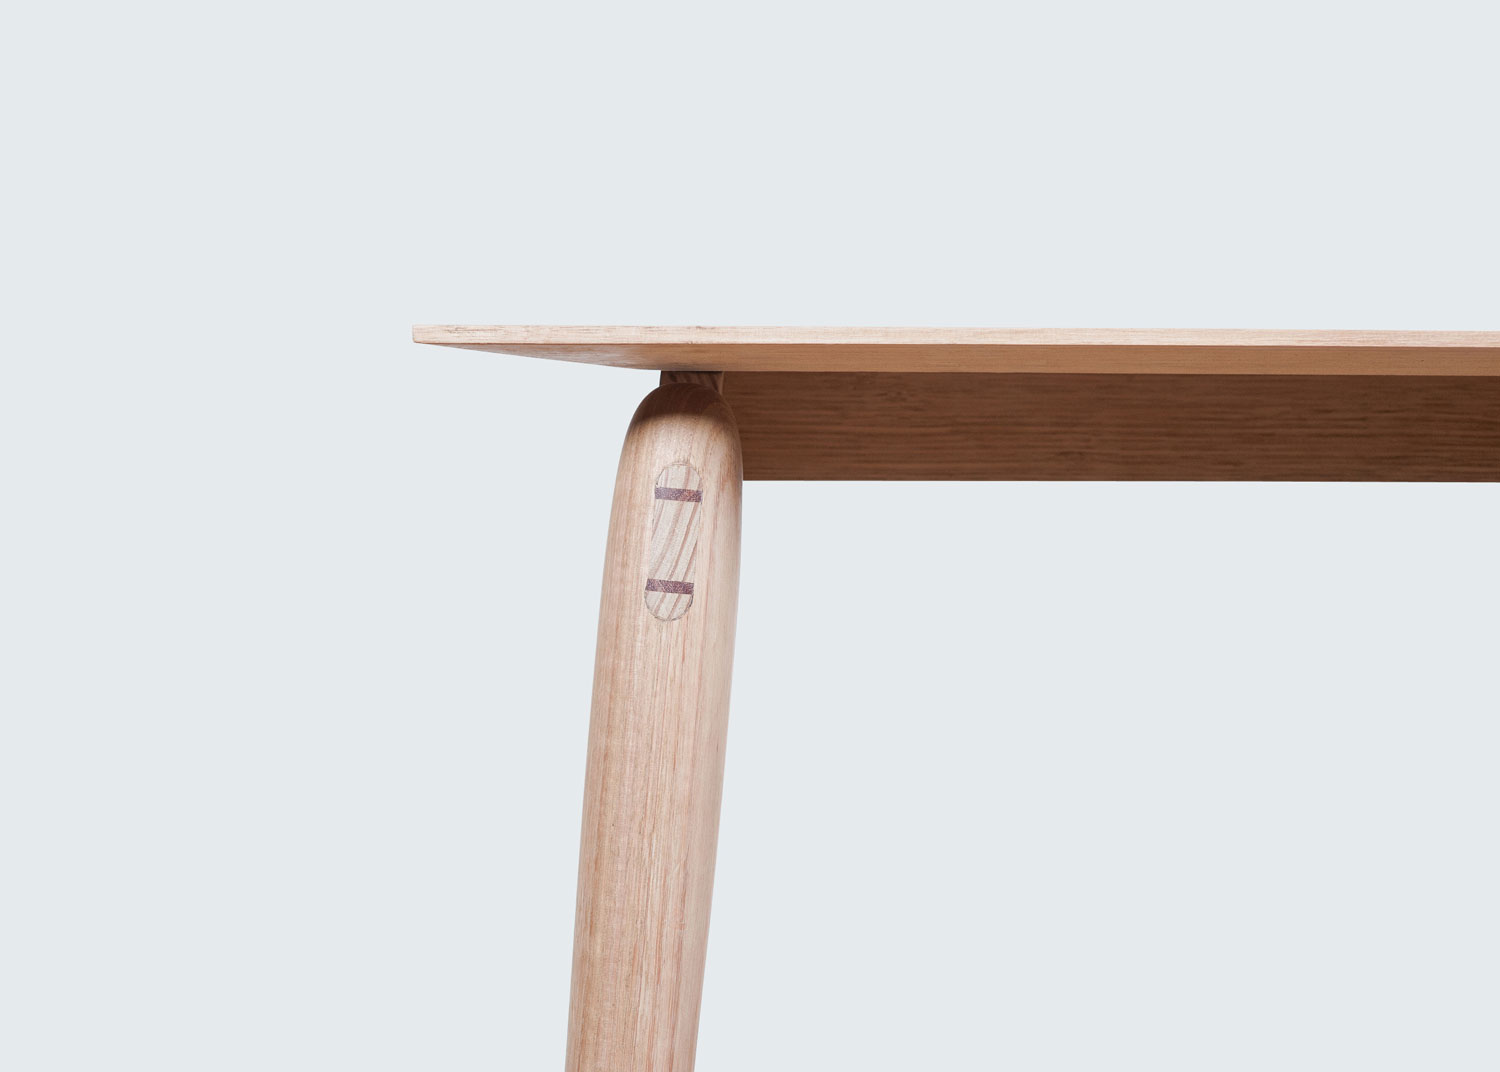 Fred-Table-by-Modern-Times-and-Adam-Markowitz-Yellowtrace-07.jpg